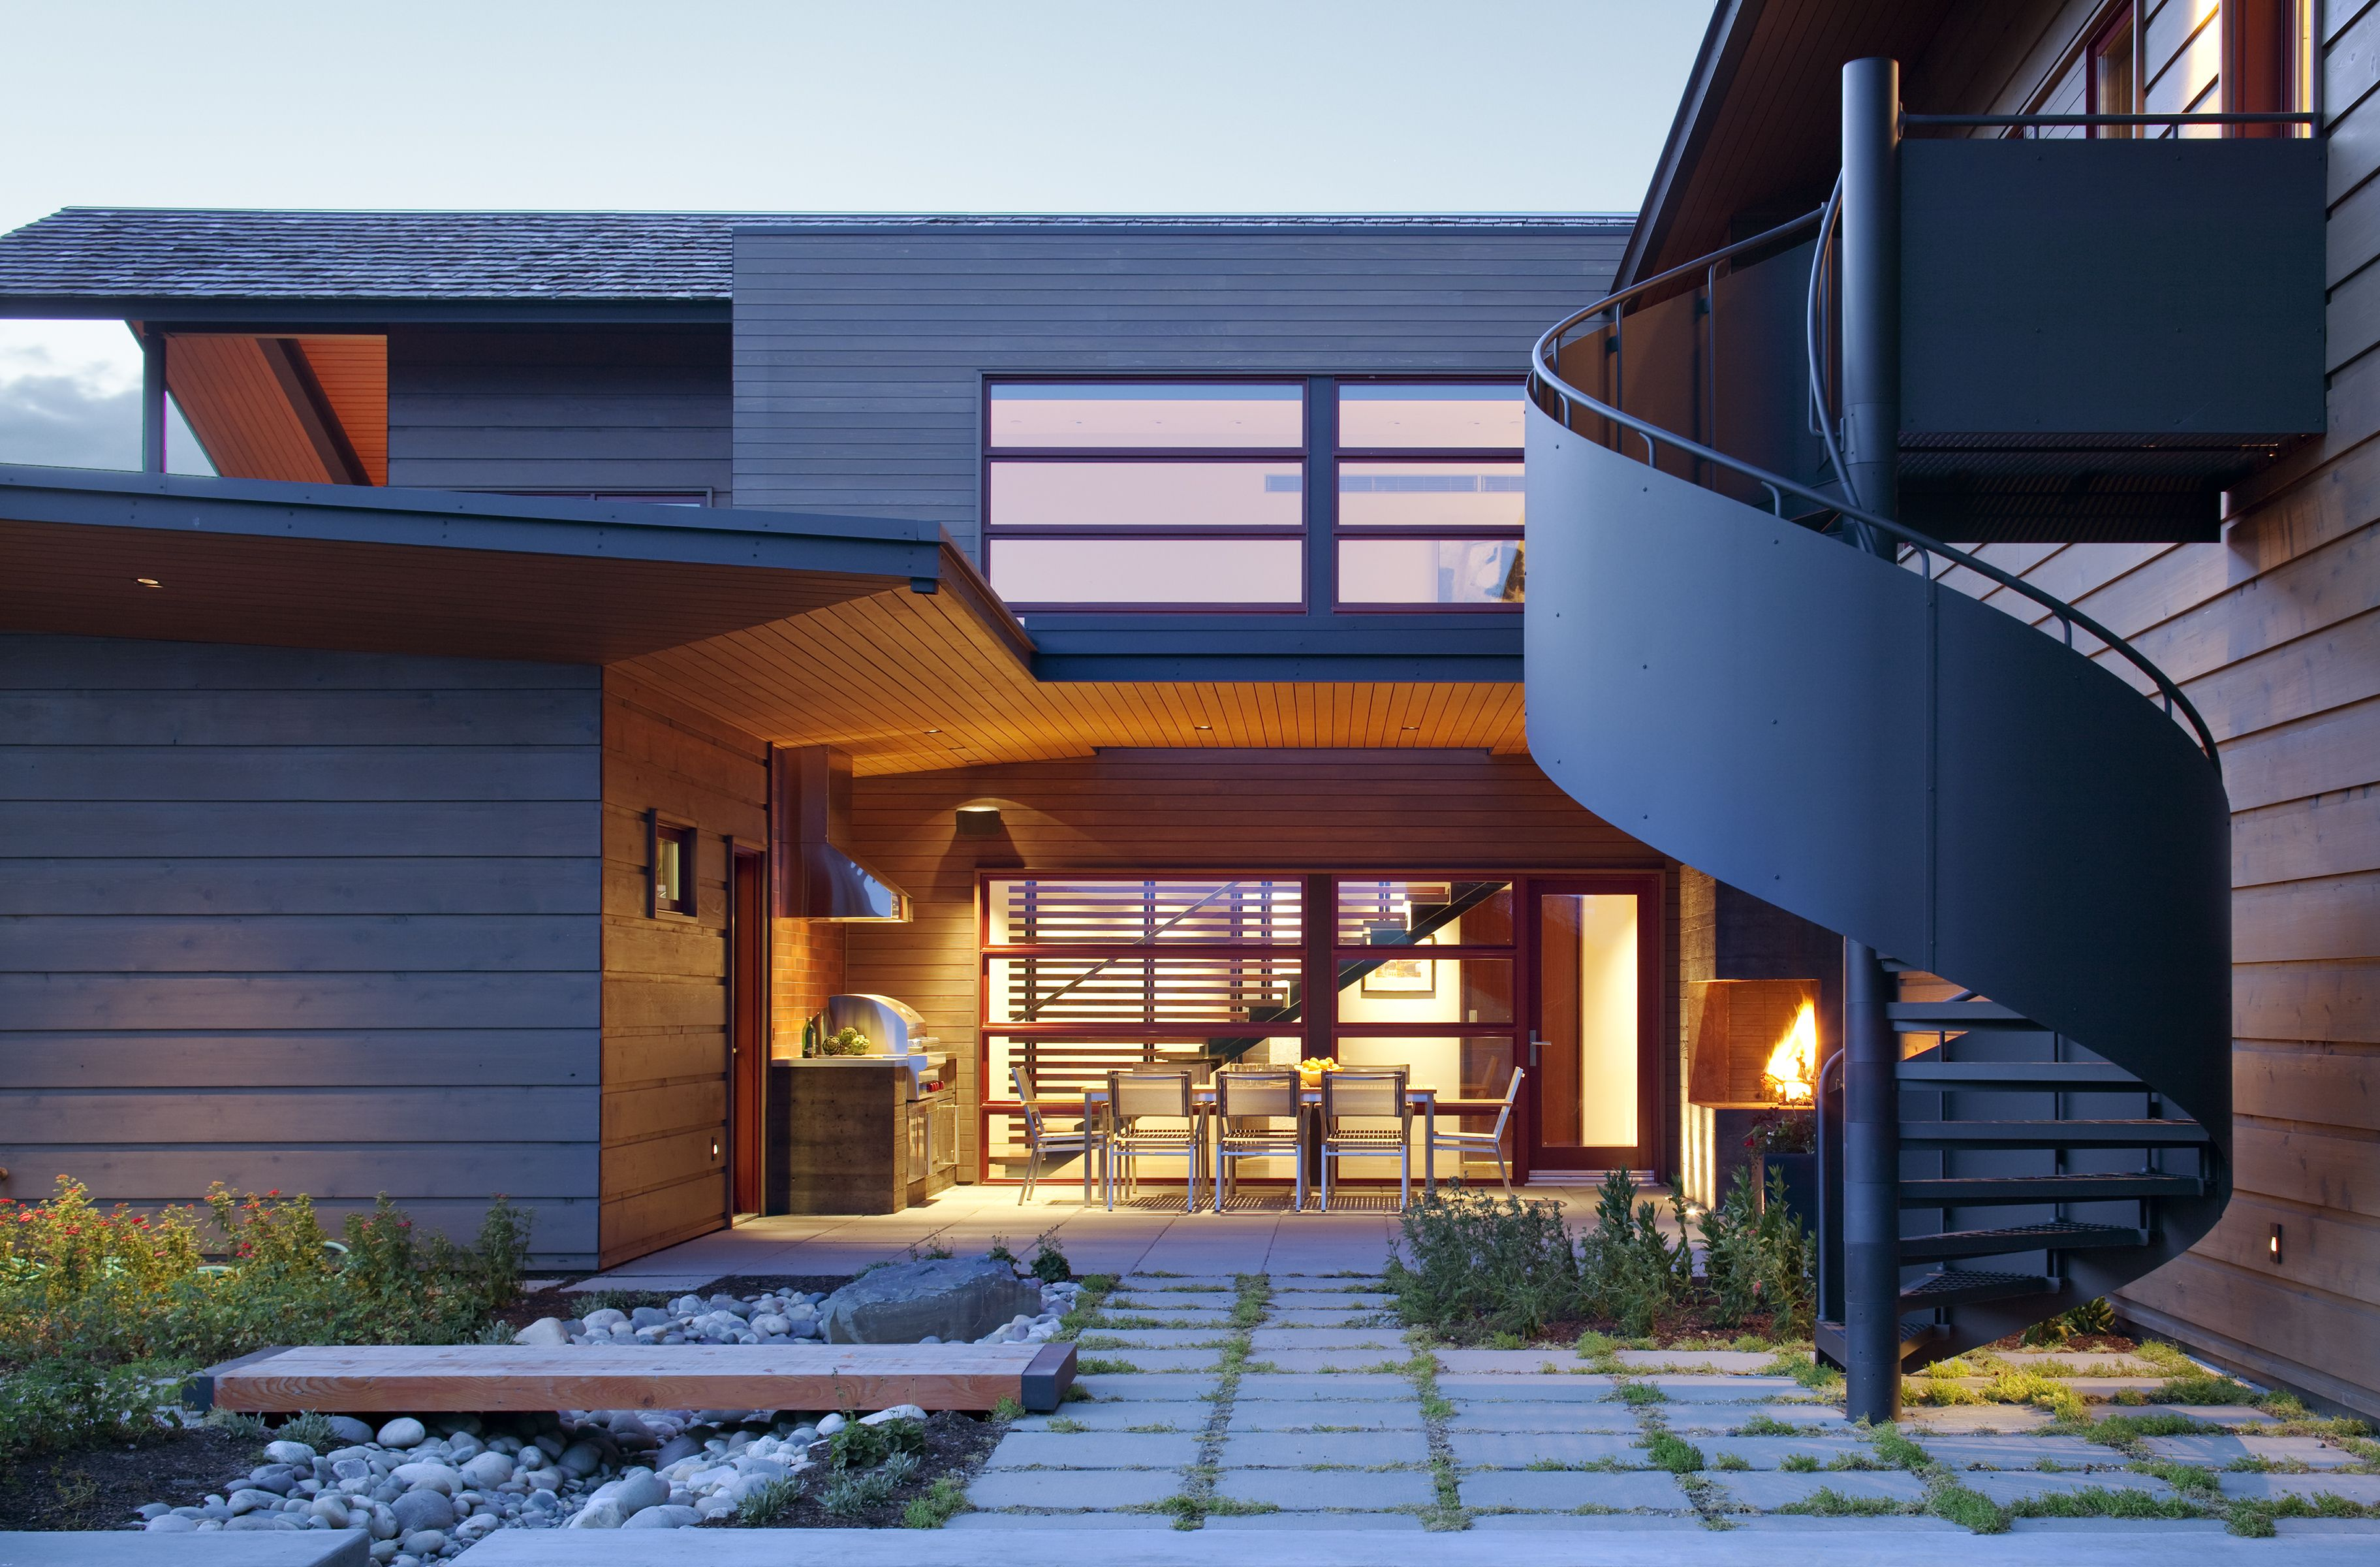 Peaks View Residence By Carney Logan Burke Architect